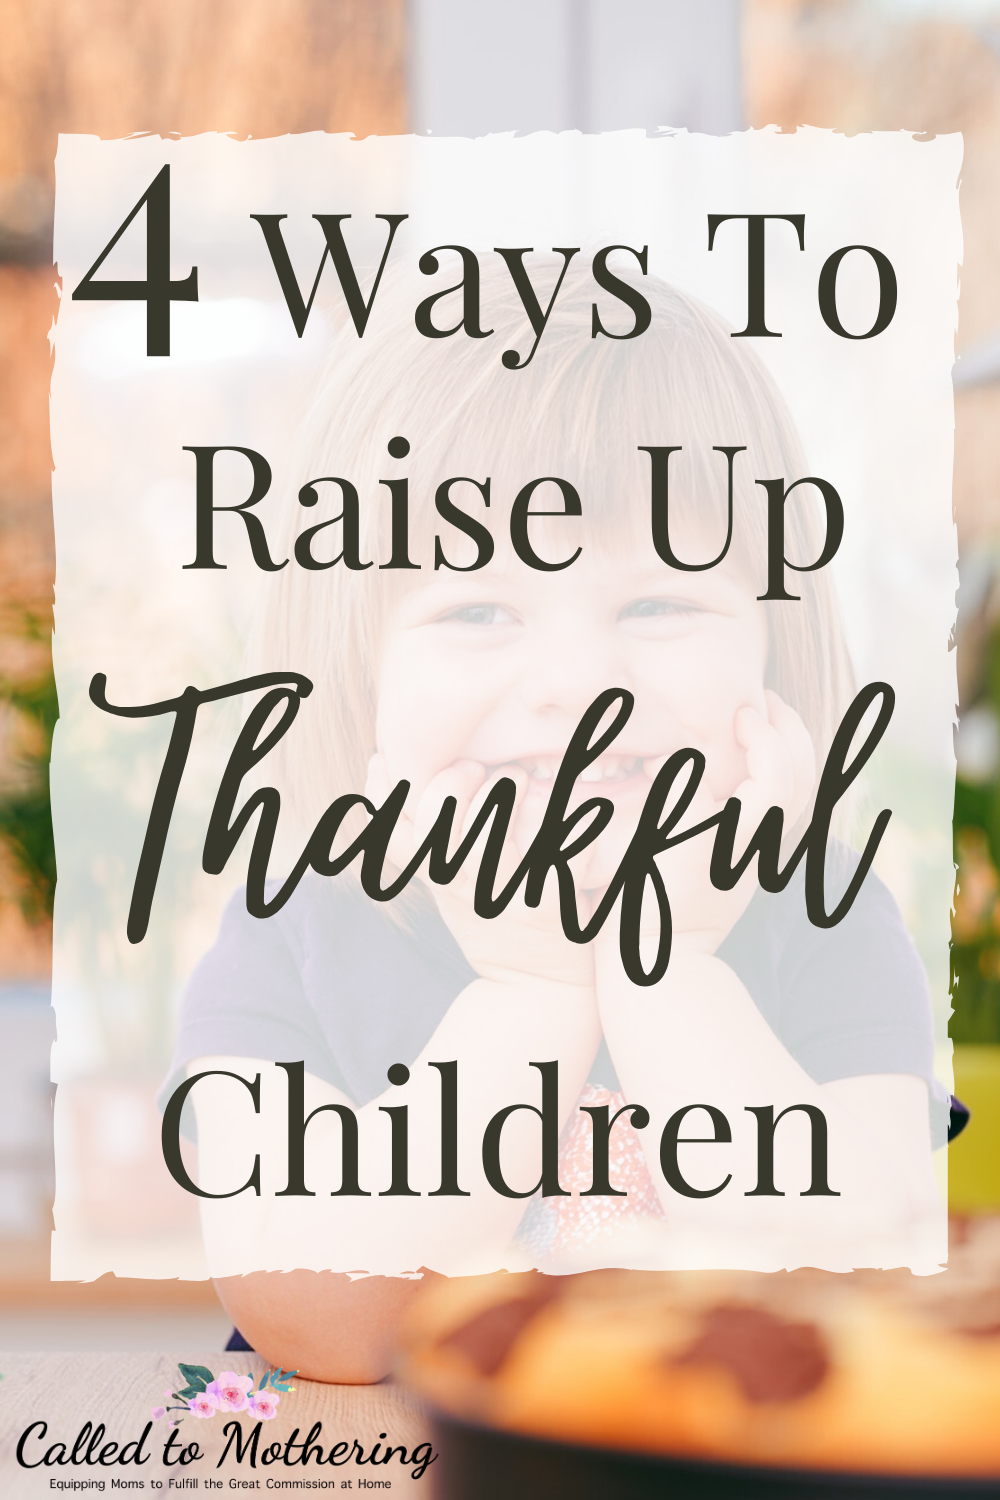 Want to stop the entitlement attitude in your kids? These 4 tips will help you raise children who are thankful and appreciate what they have. #charactertraining #raisingthankfulkids